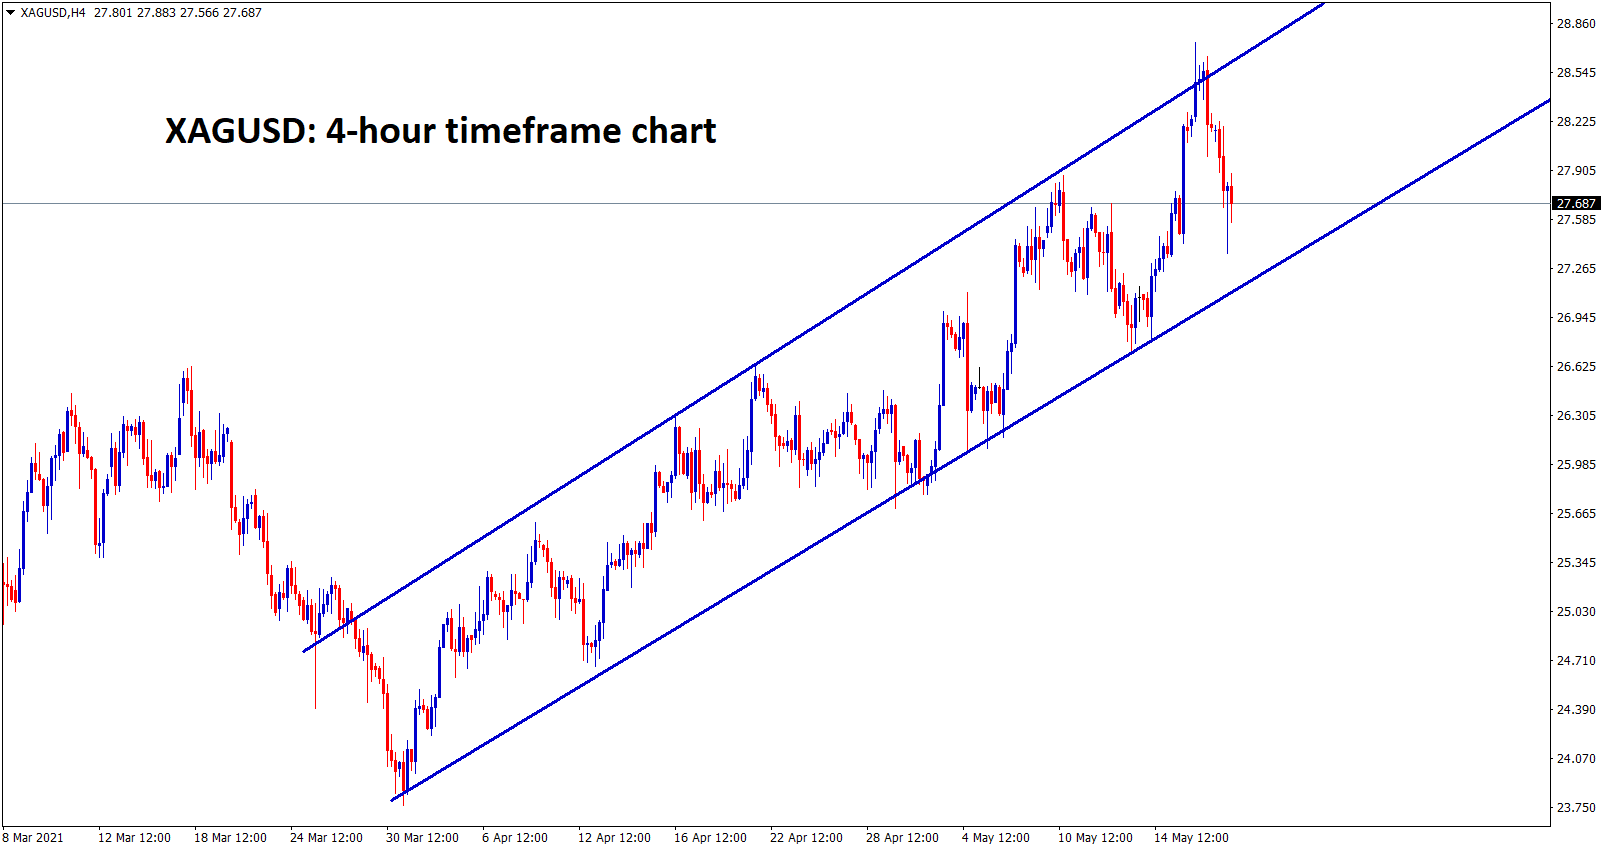 Silver is moving in an Ascending channel for long time wait for the breakout from this channel range